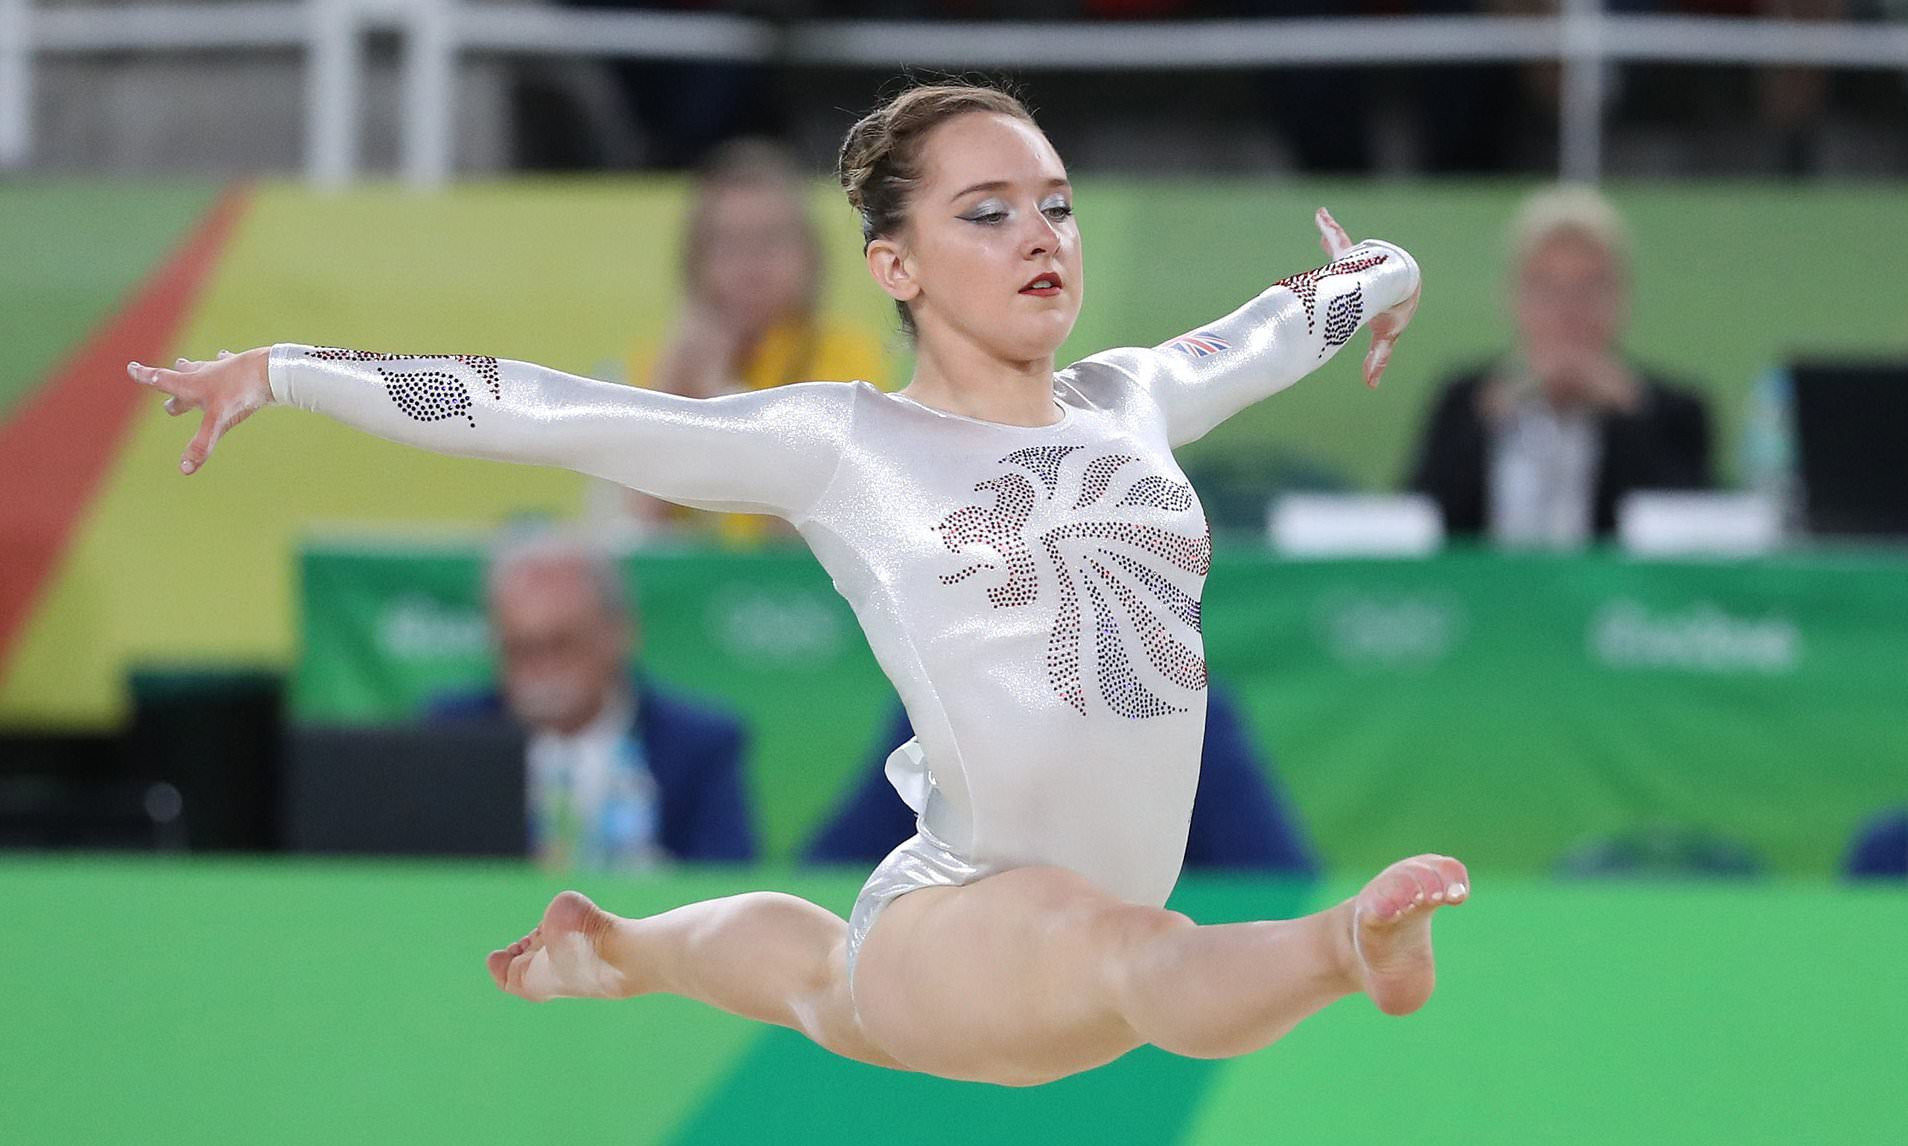 Amy Tinkler has taken another swipe at British Gymnastics over its handling of her abuse case ©Getty Images